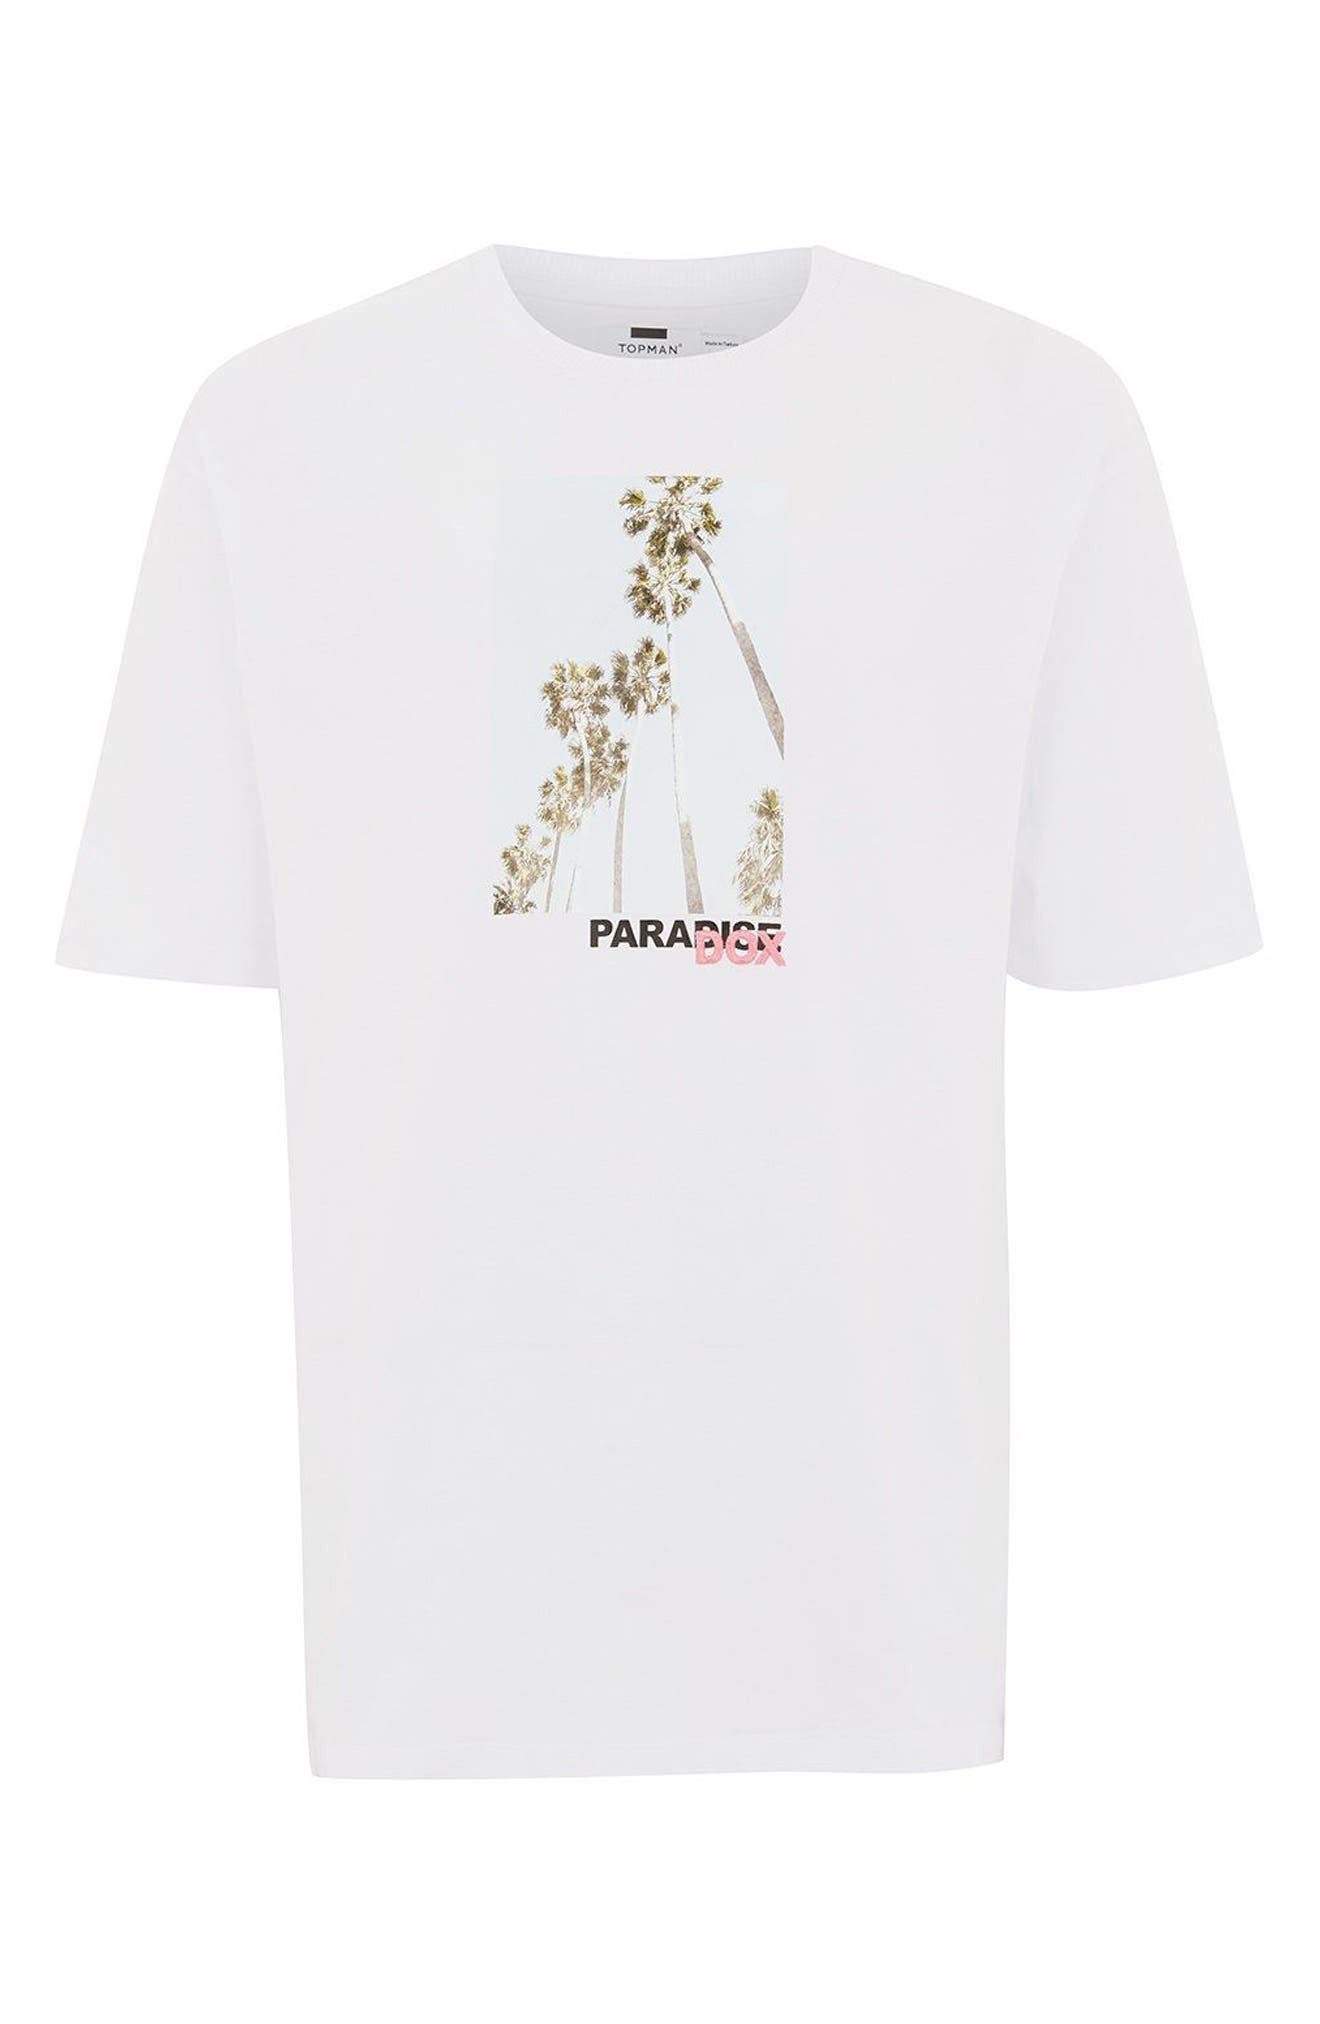 Paradox Graphic T-Shirt,                             Alternate thumbnail 3, color,                             White Multi